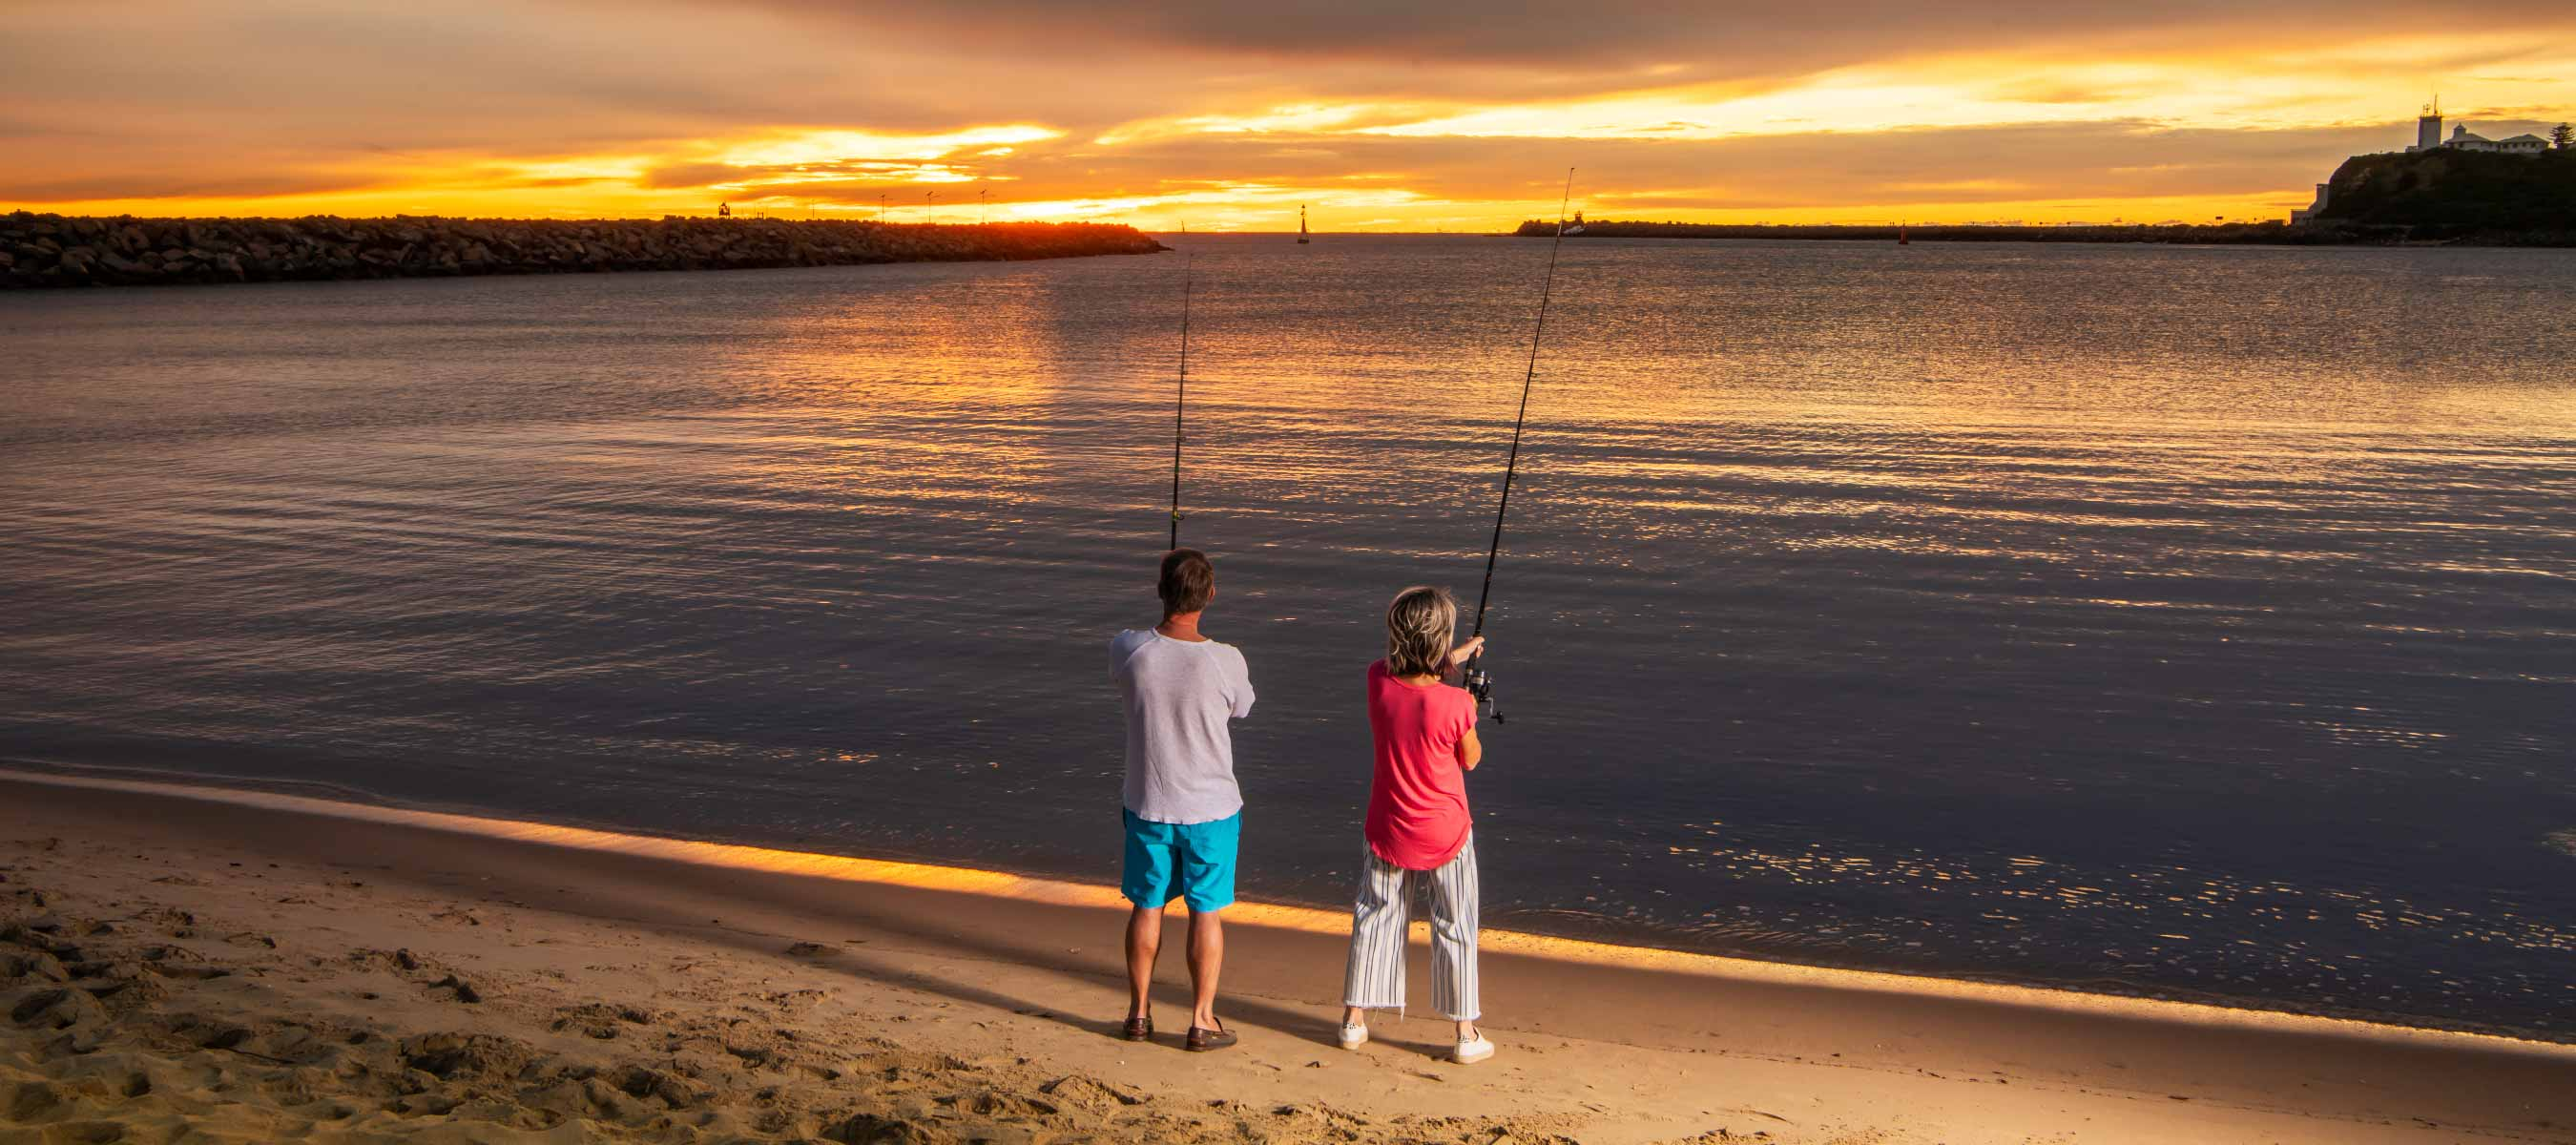 Fishing at Little beach at dawn